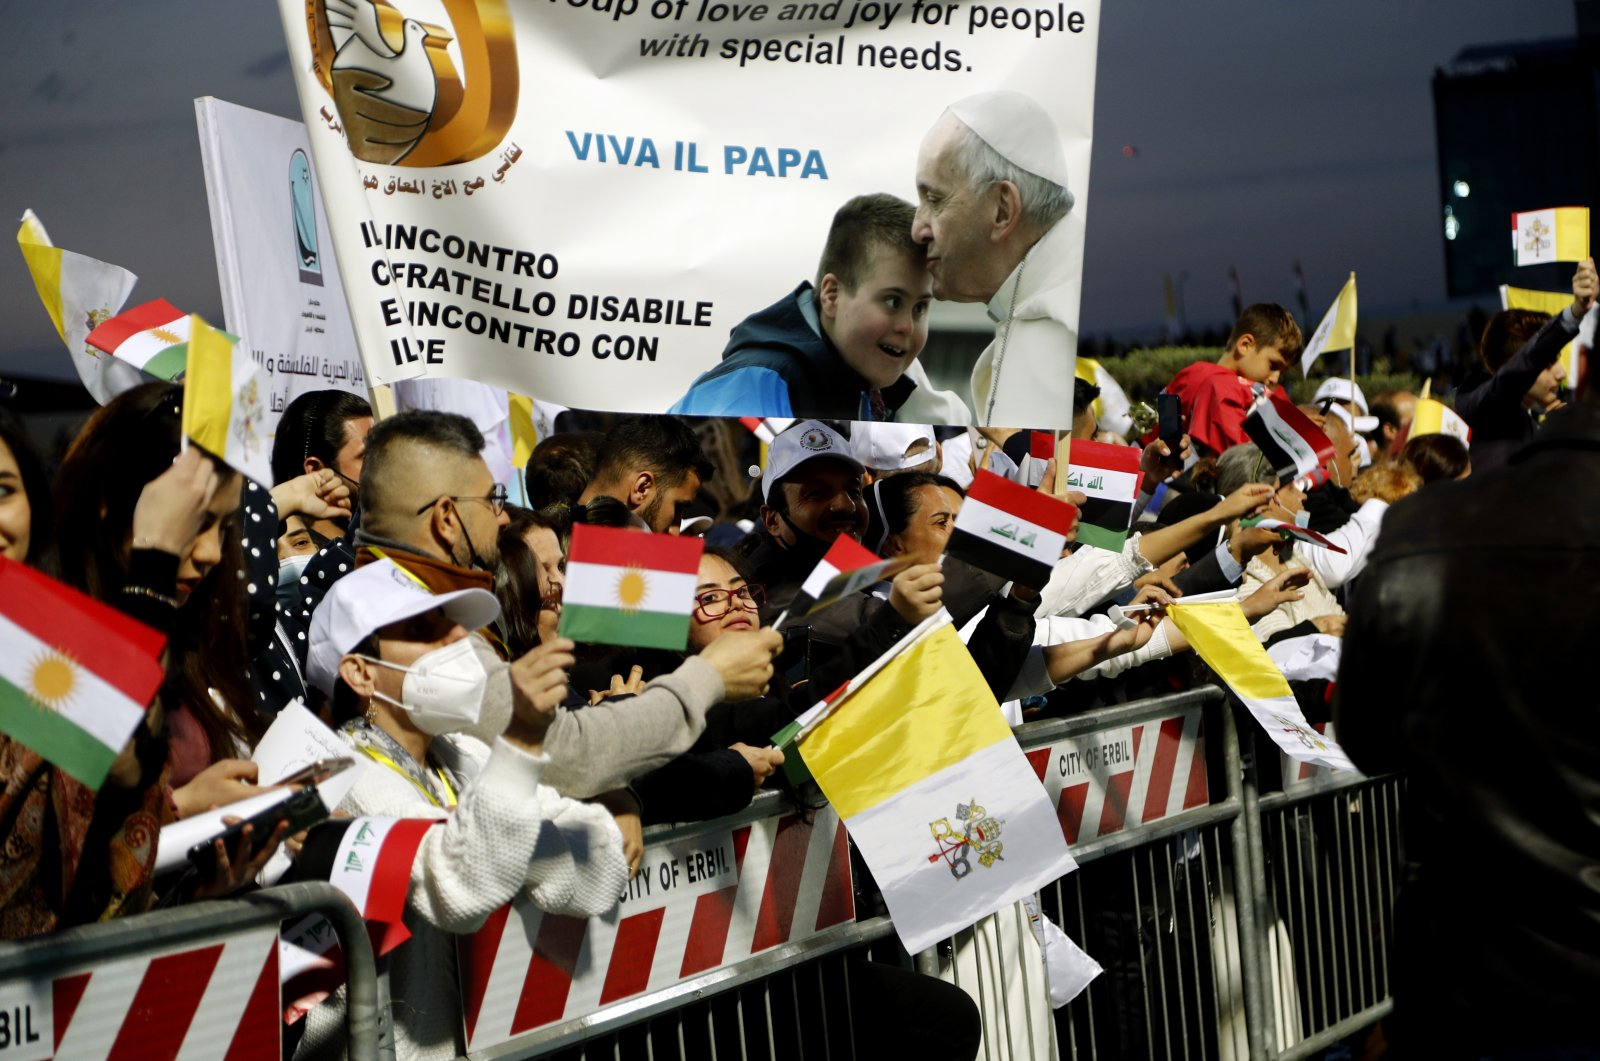 Iraqi Christians say goodbye to Pope Francis after an open air Mass at a stadium in Irbil, Iraq, Sunday, March 7, 2021. (AP File Photo)